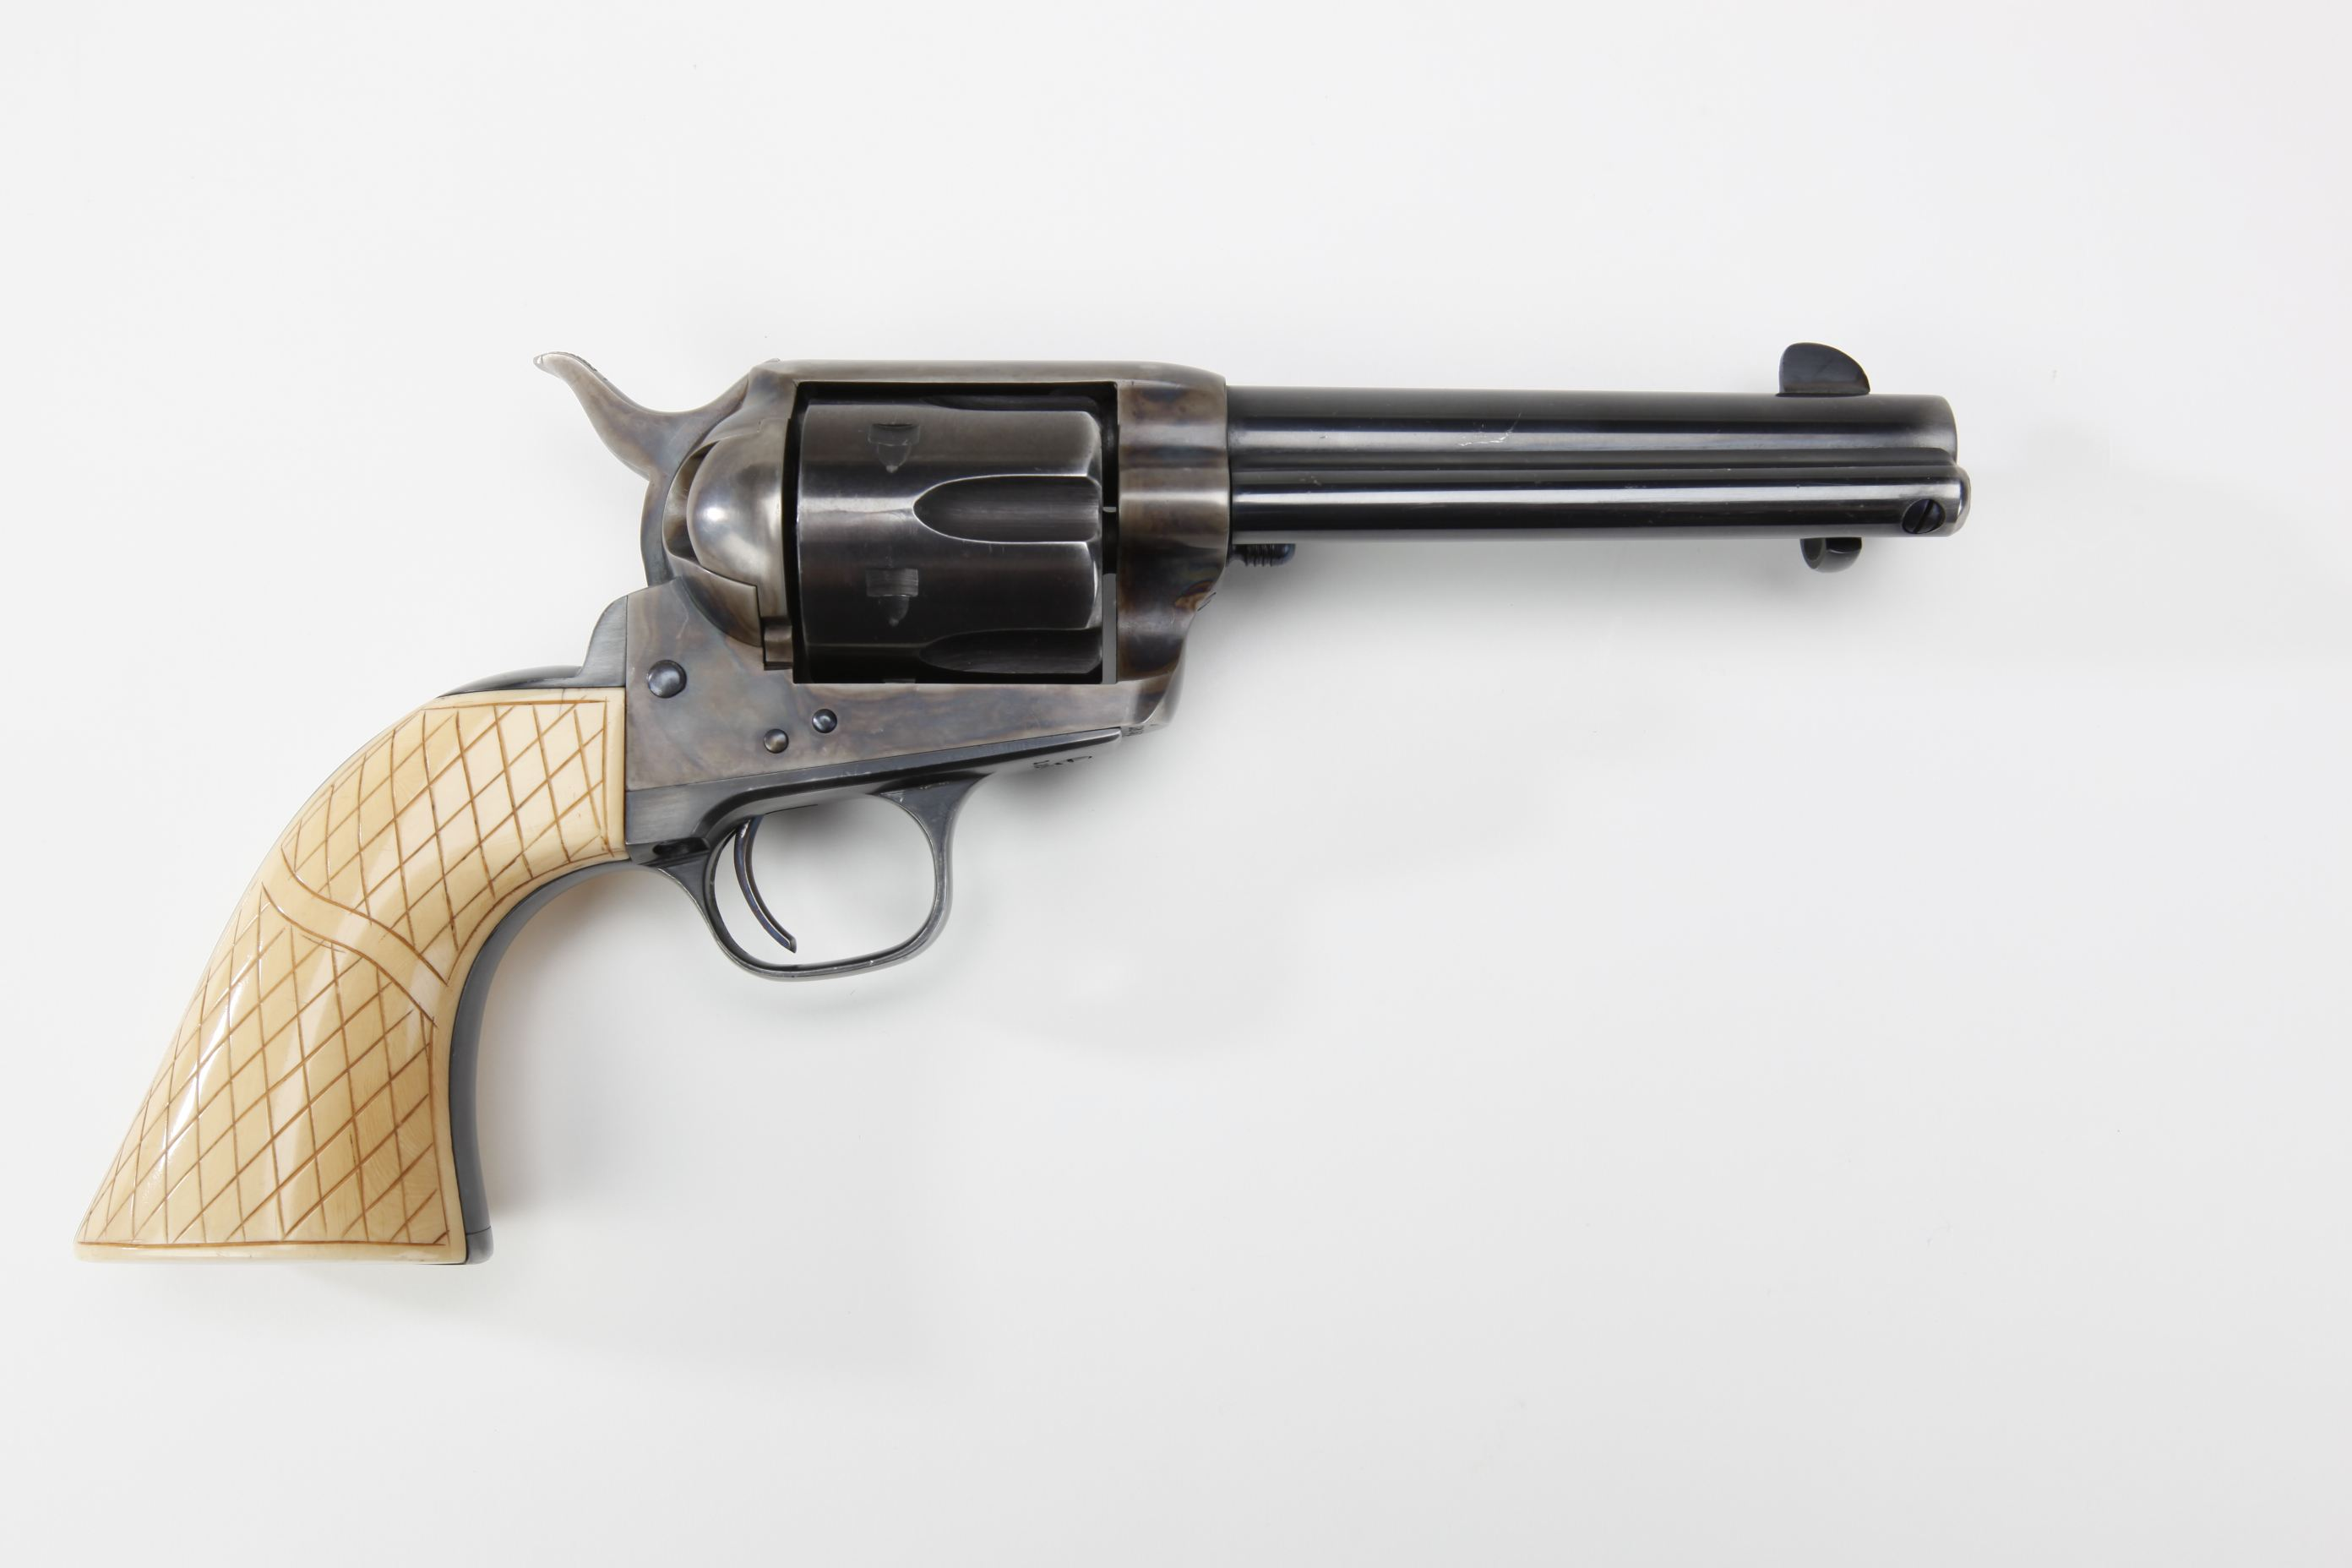 Tom Selleck Colt Single Action Army revolver with ivory grips